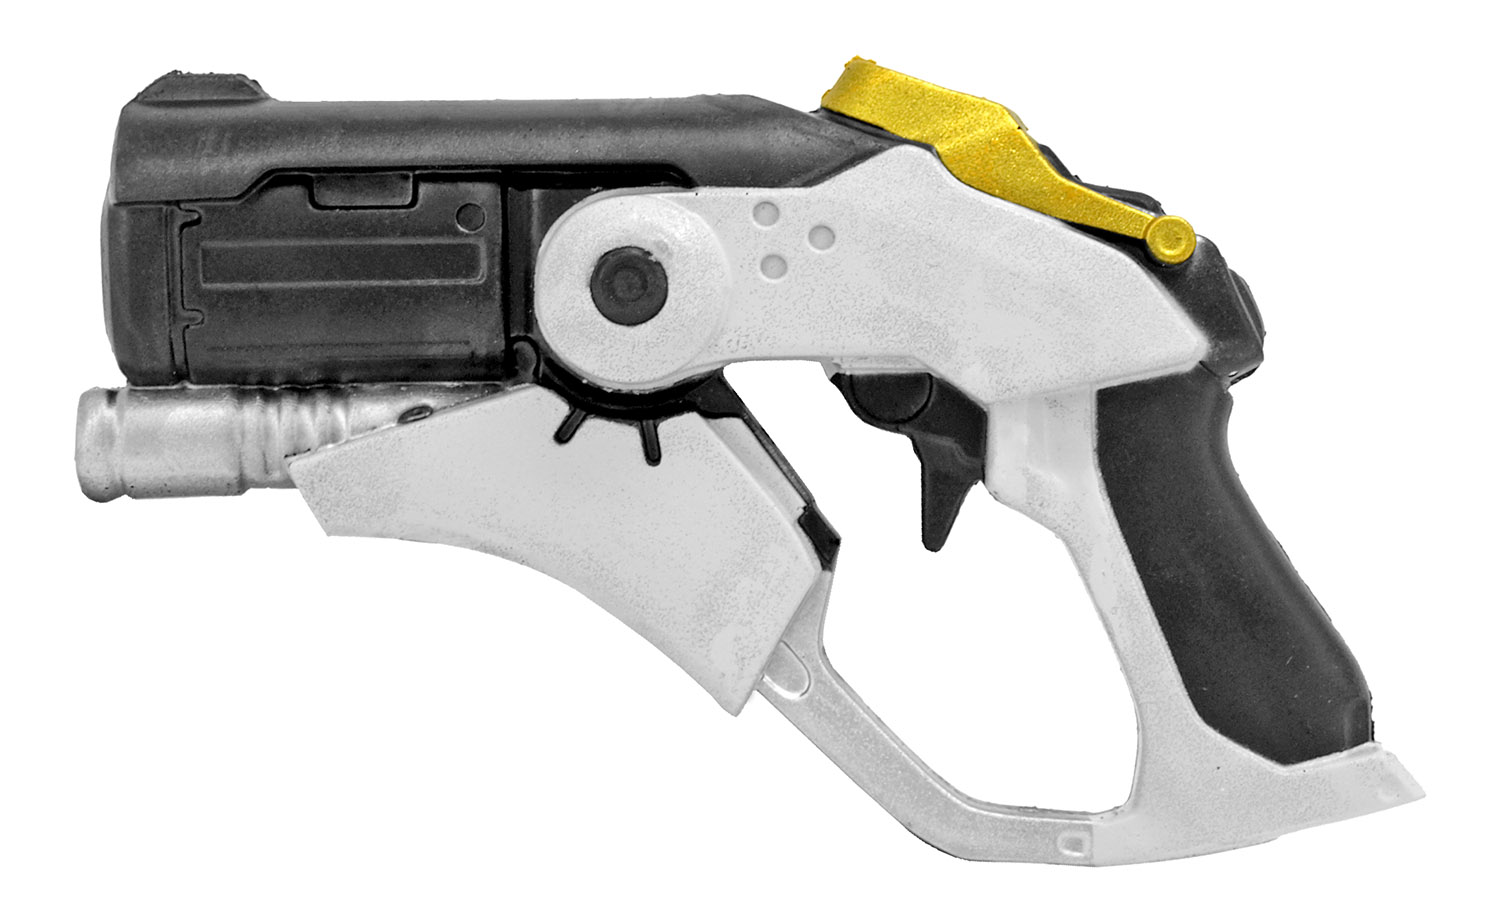 Star Cricket Foam Pistol - White